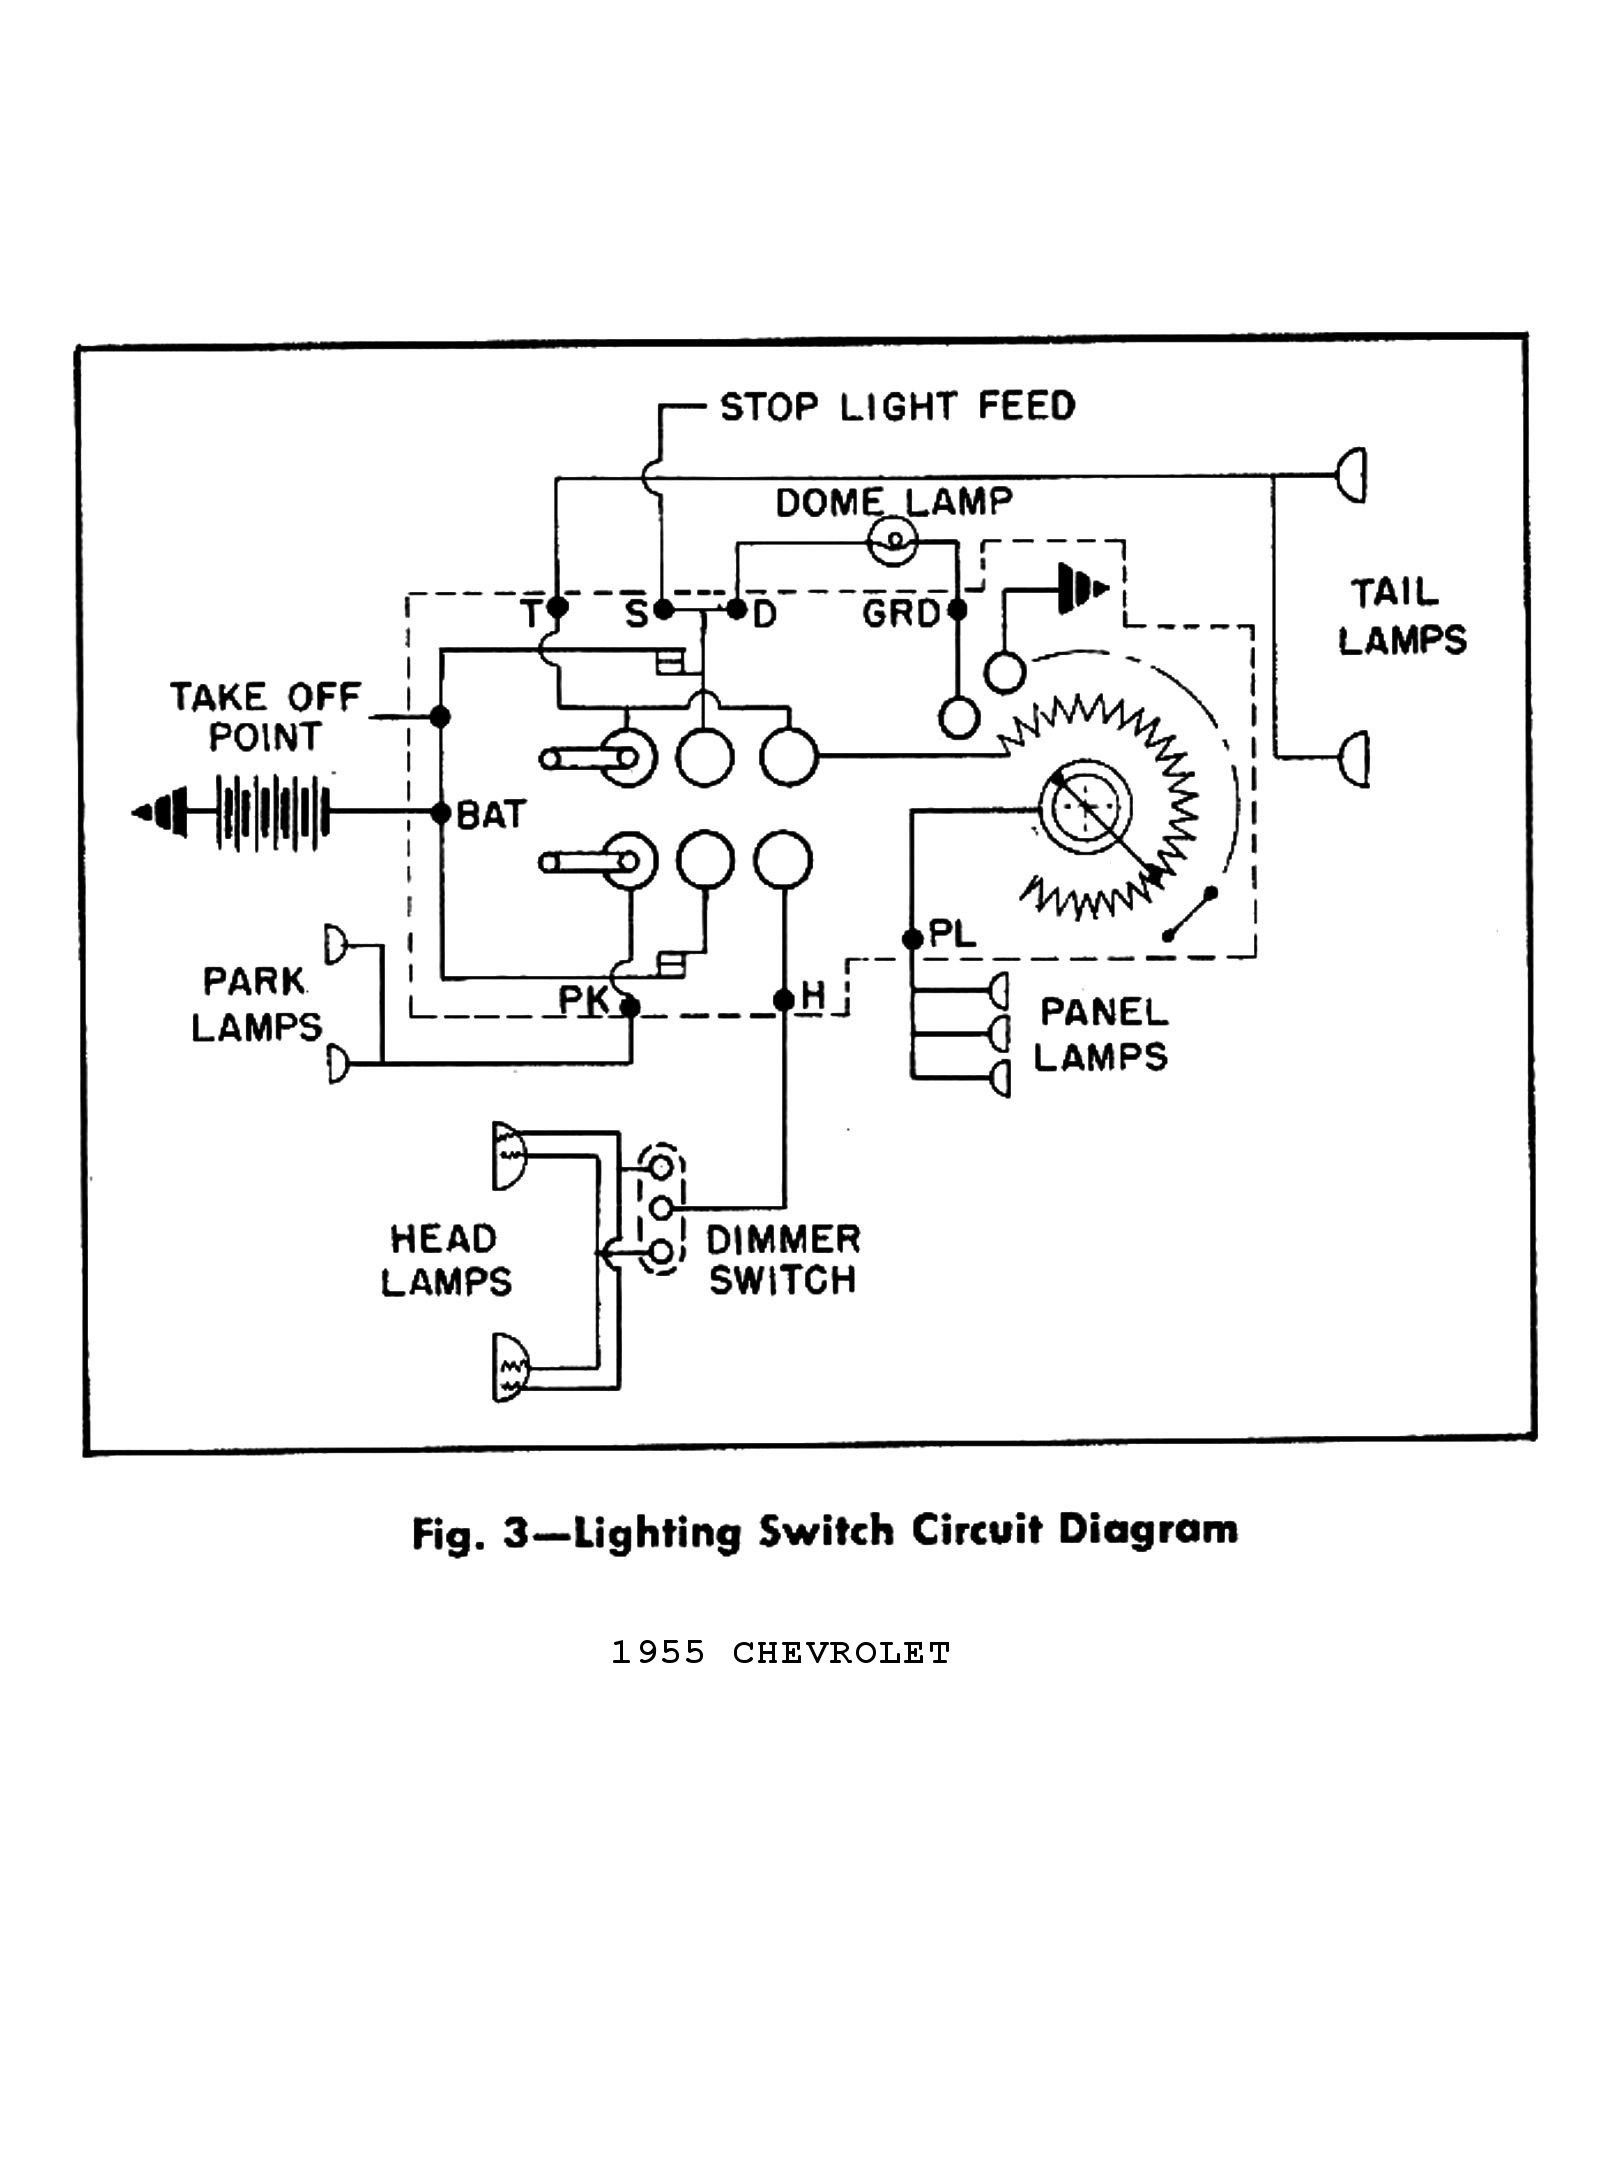 Car Interior Lights Delay Circuit Diagram